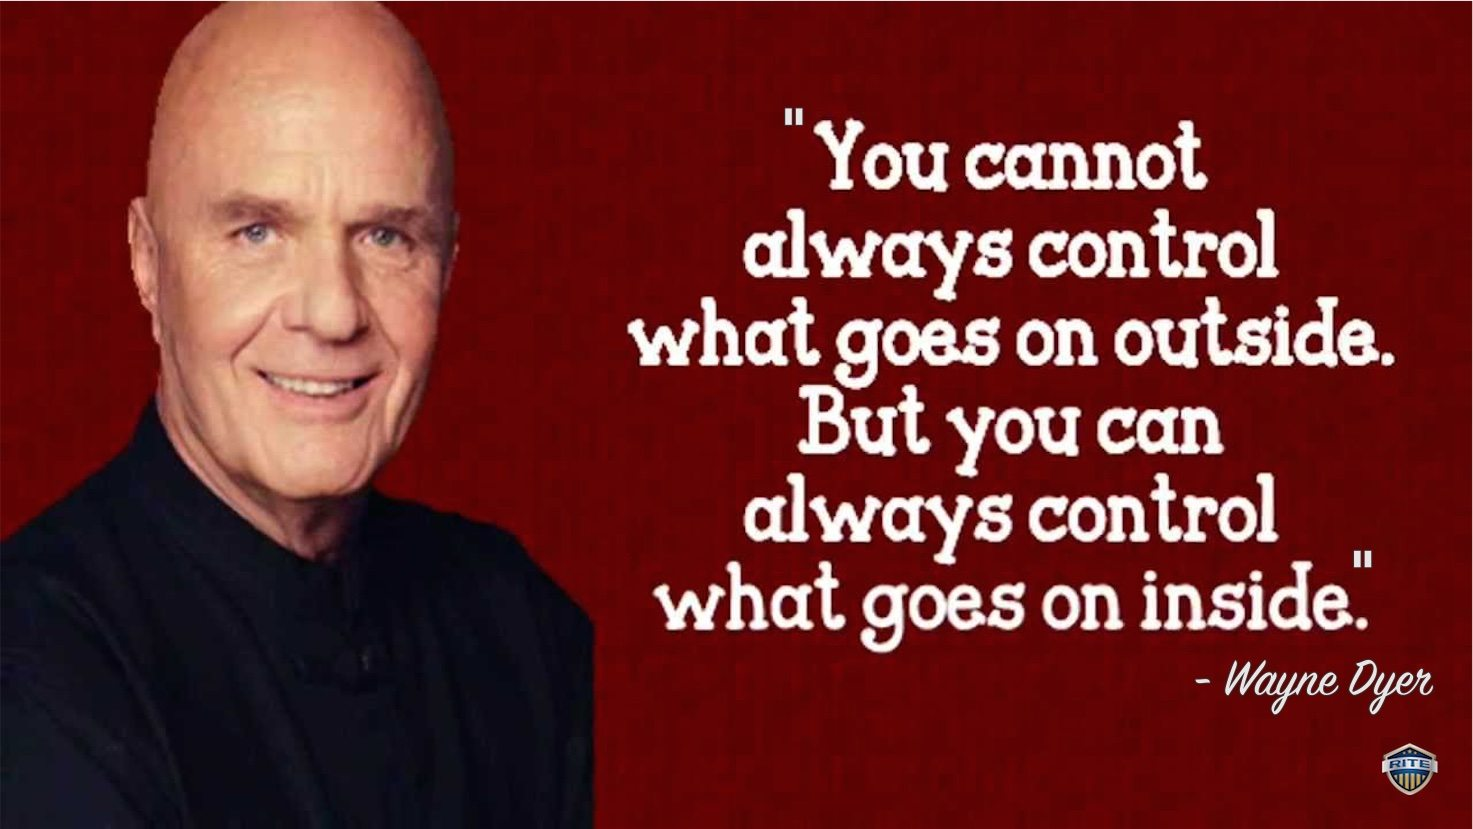 wayne dyer quote inside control